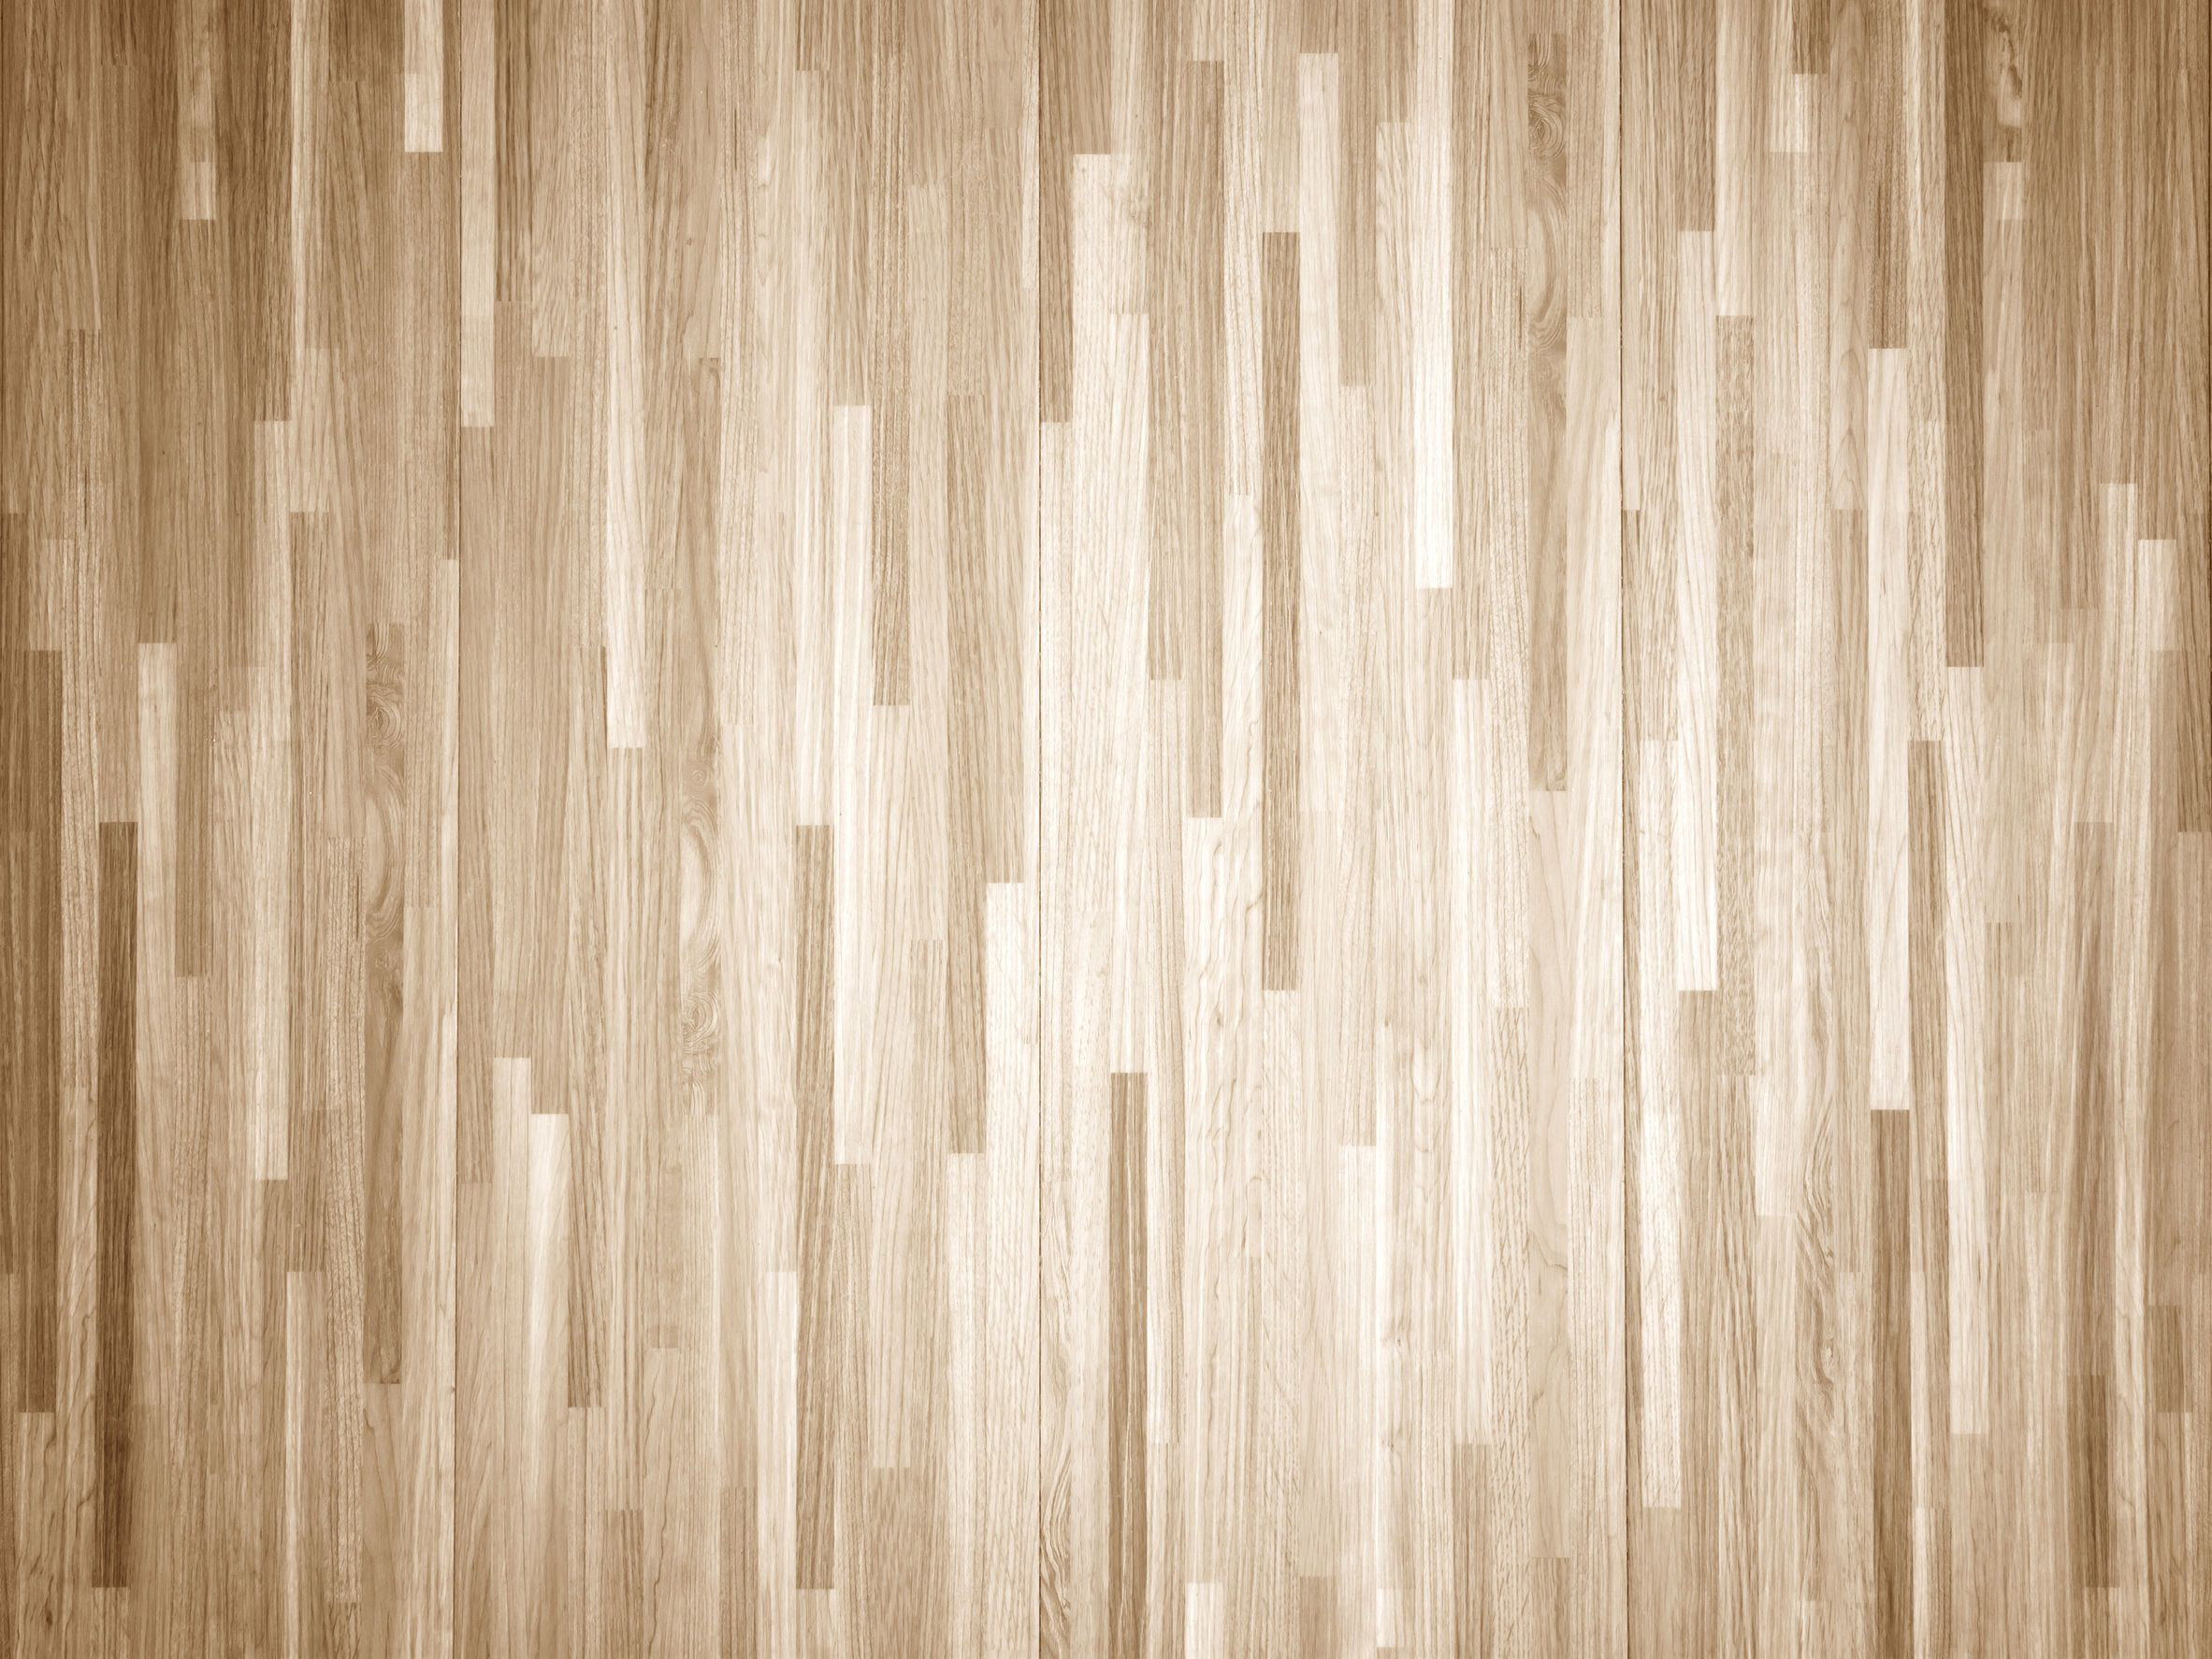 hardwood floor refinishing polyurethane of how to chemically strip wood floors woodfloordoctor com for you